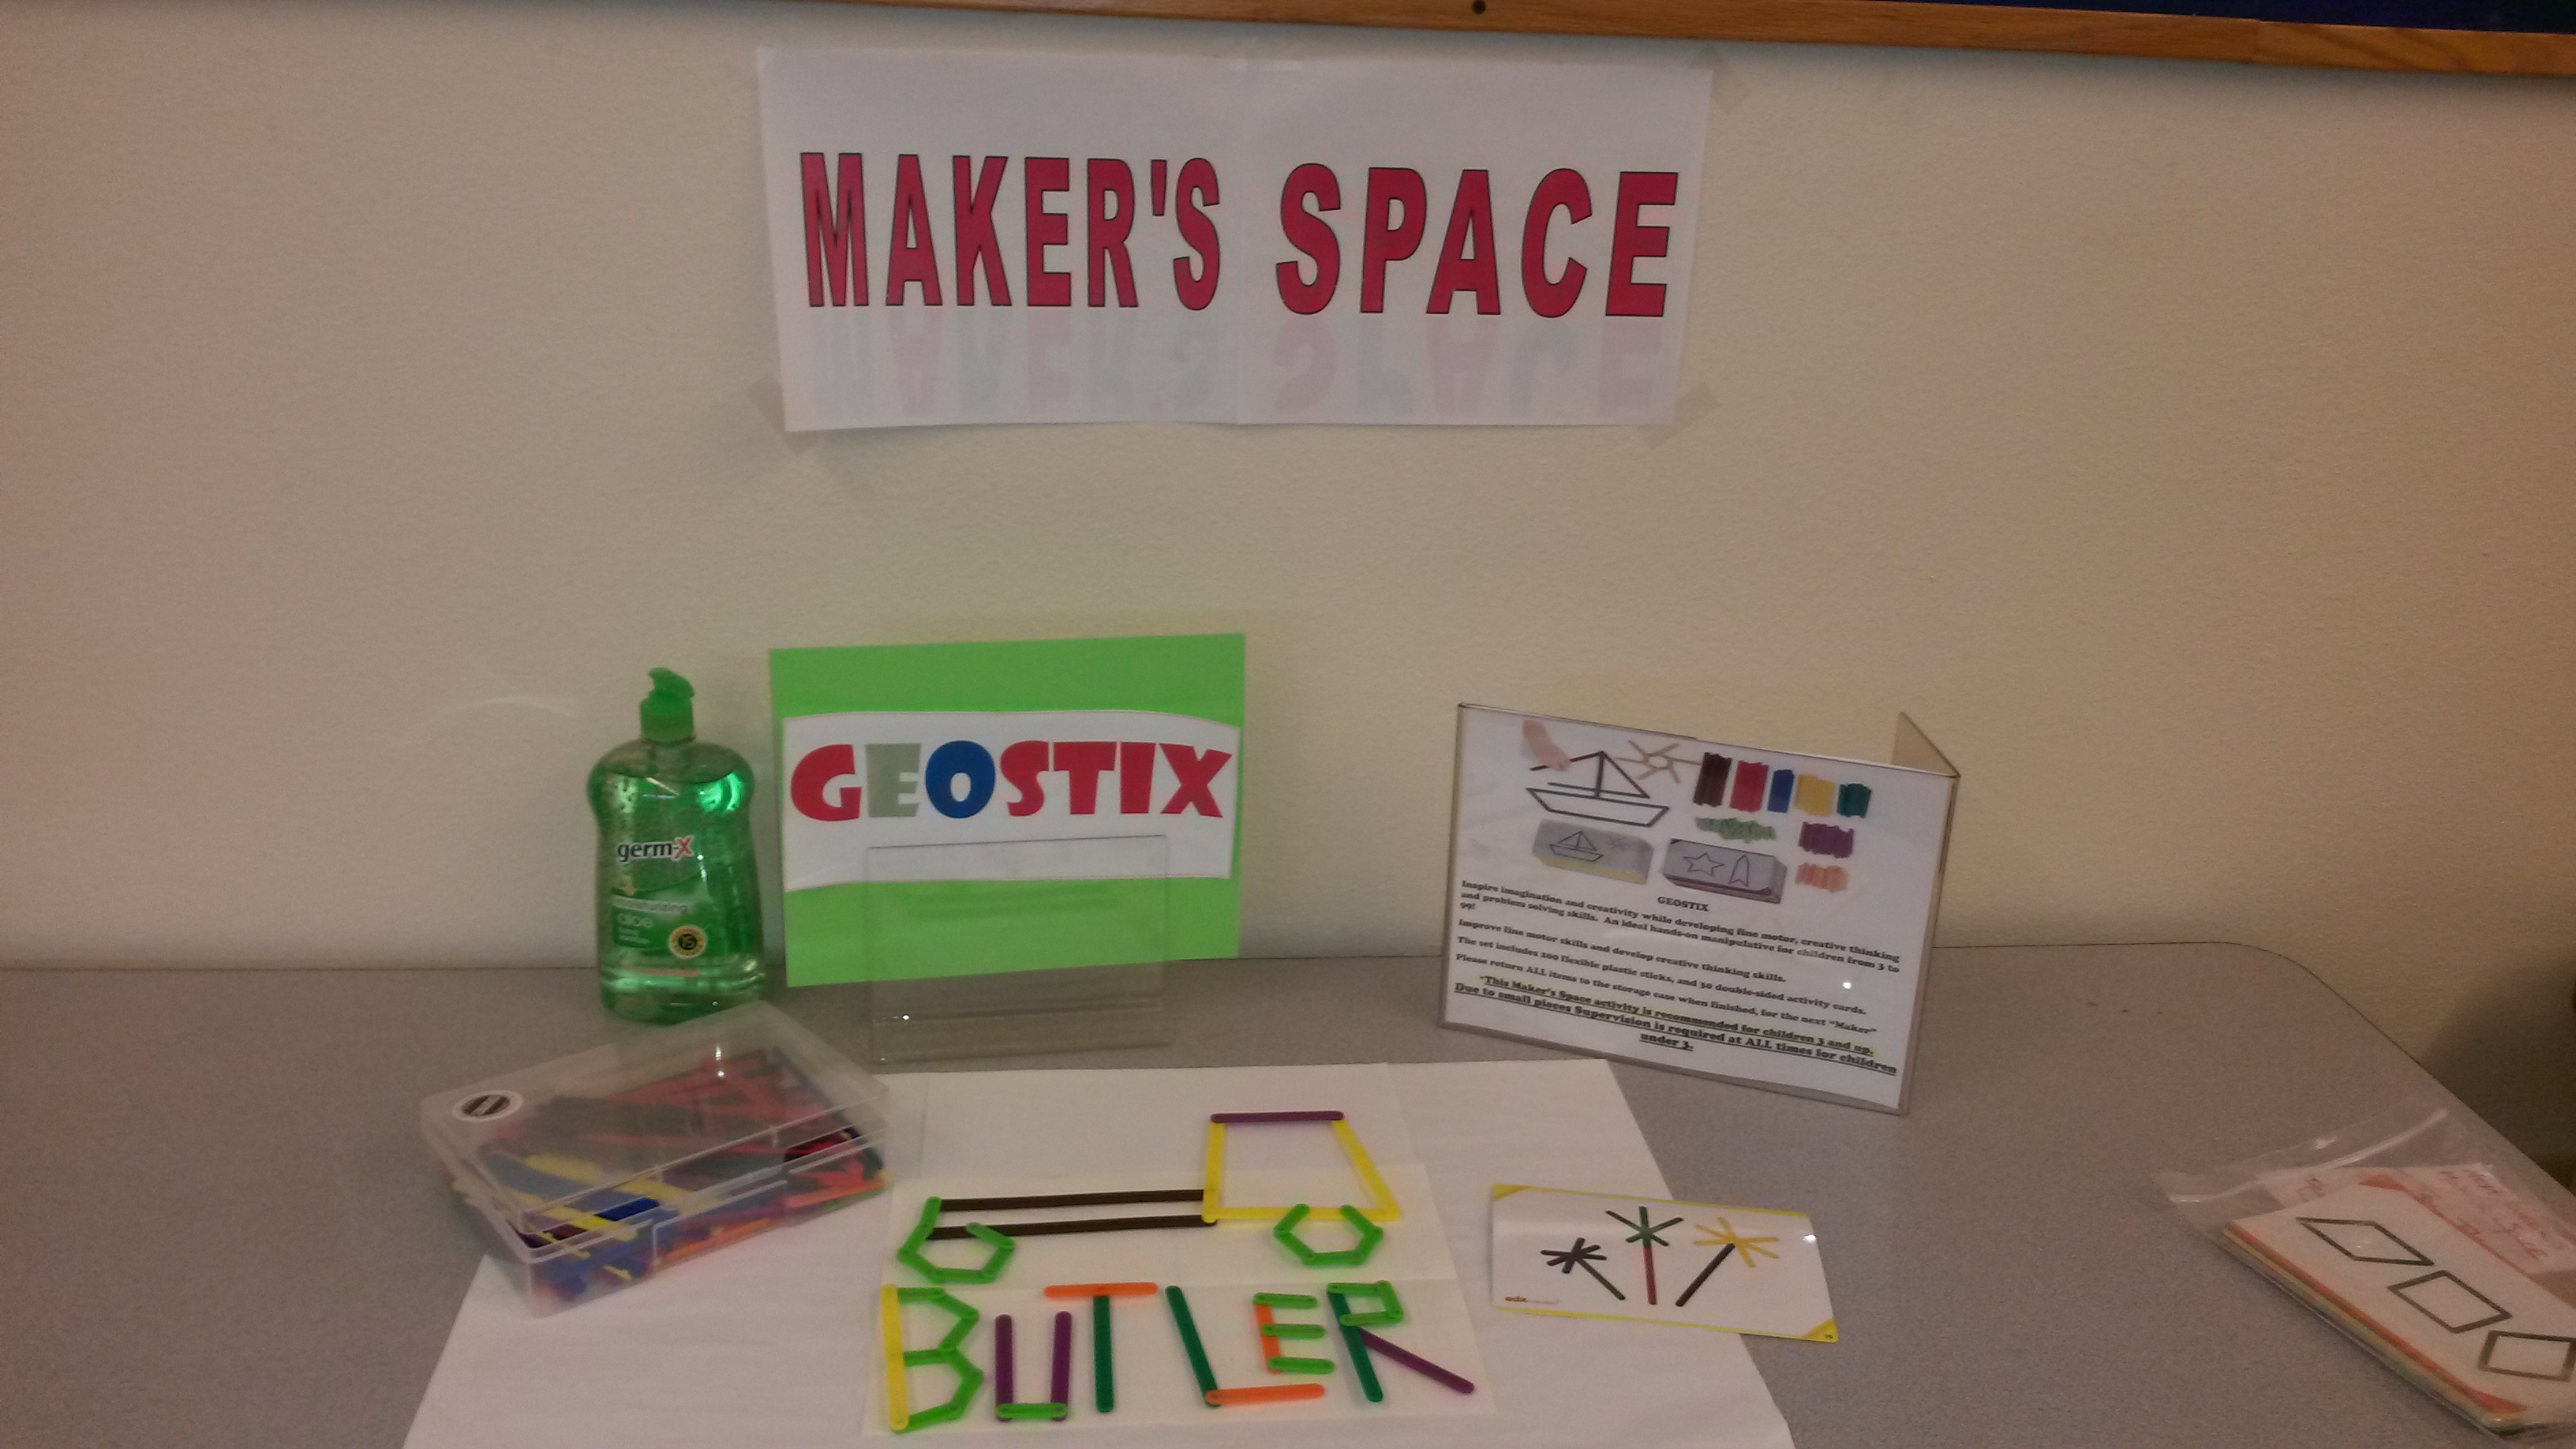 Come join Maker Space